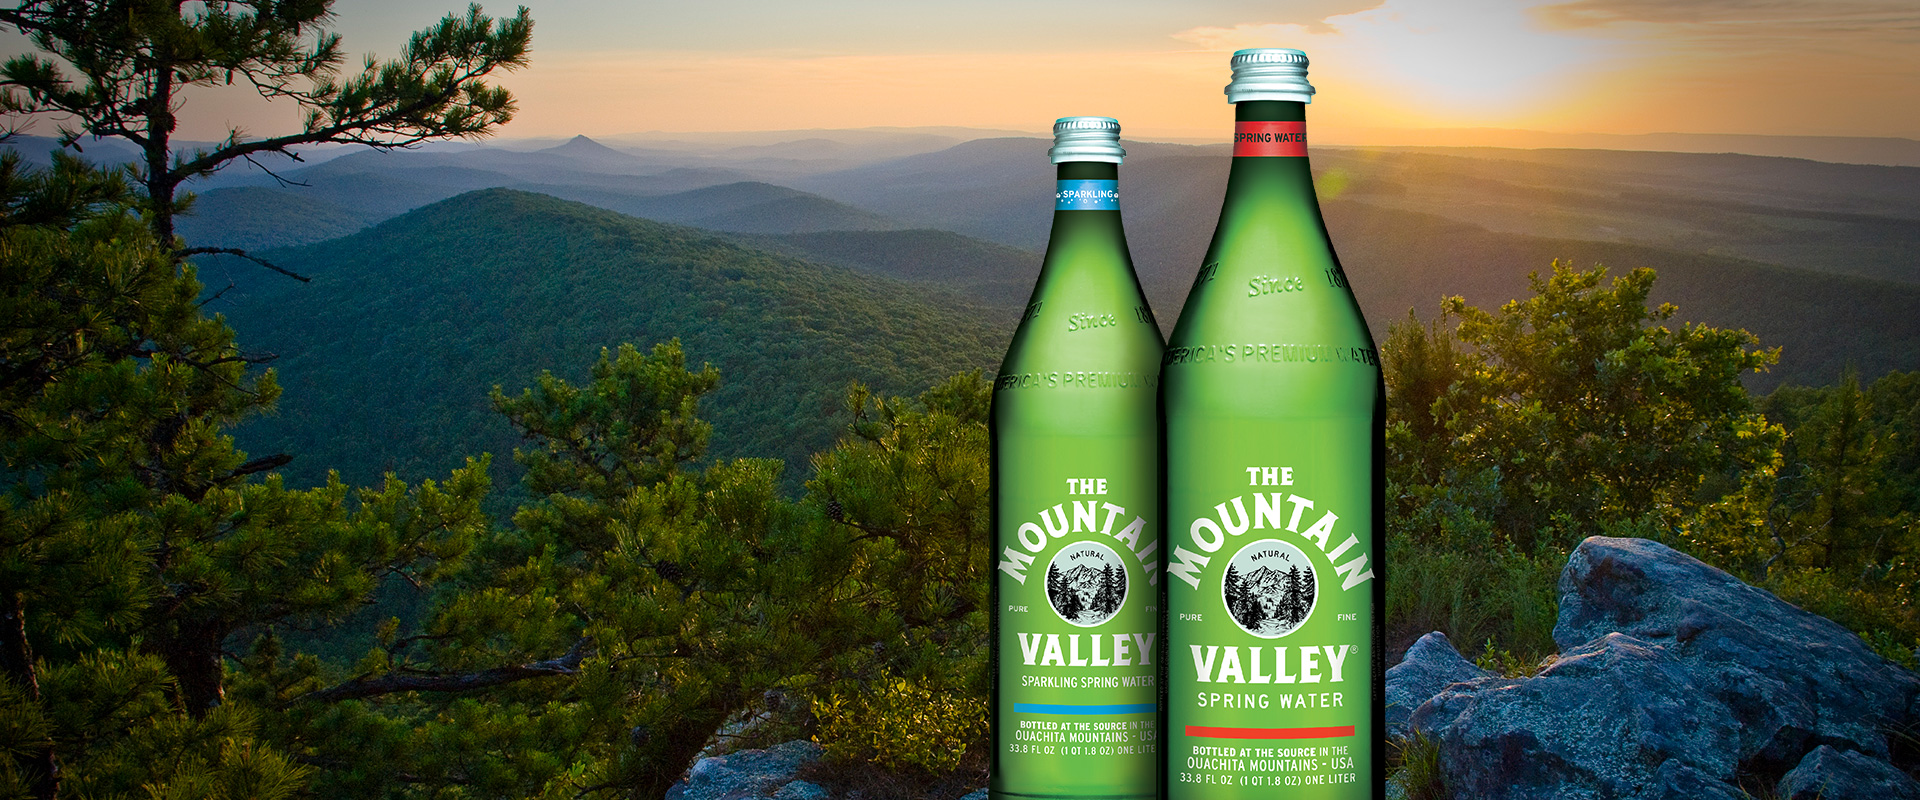 Mountain Valley Spring Water Partnerships With The Murphy